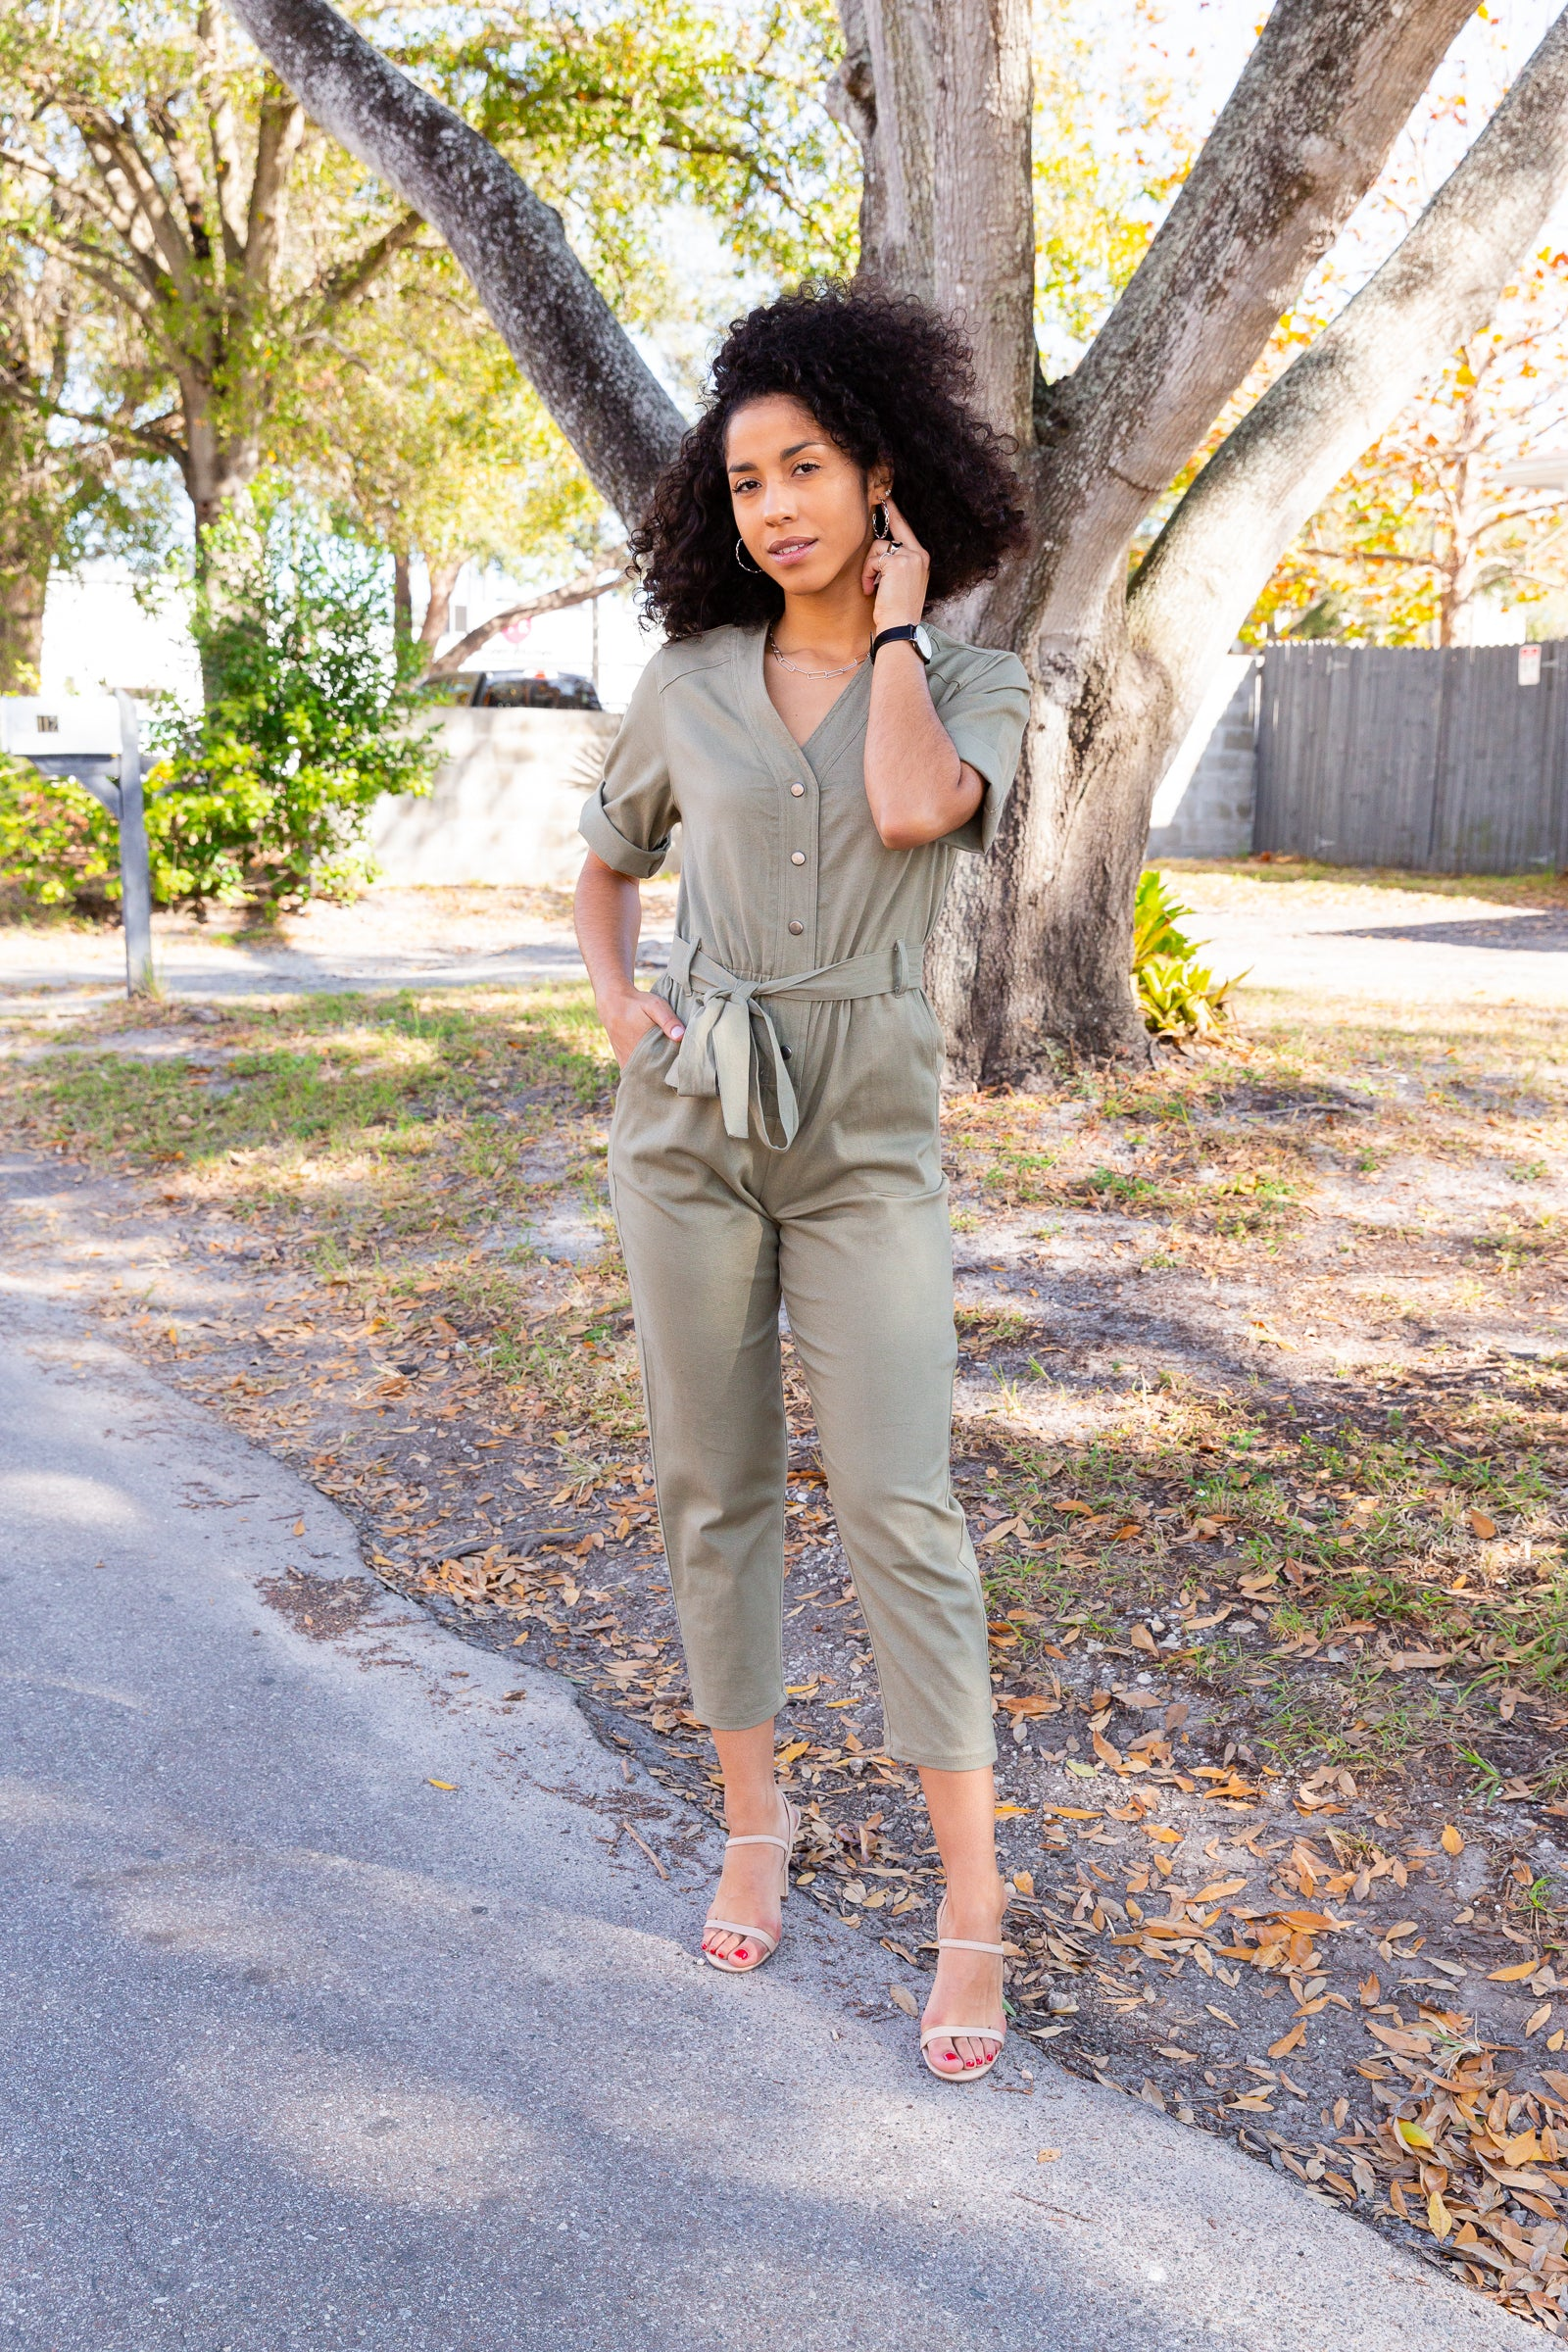 Short cuffed sleeves attach to a v-neckline on a button-down and fitted bodice before meeting an elastic waistband with belt loops. It goes into straight pant legs with side pockets.